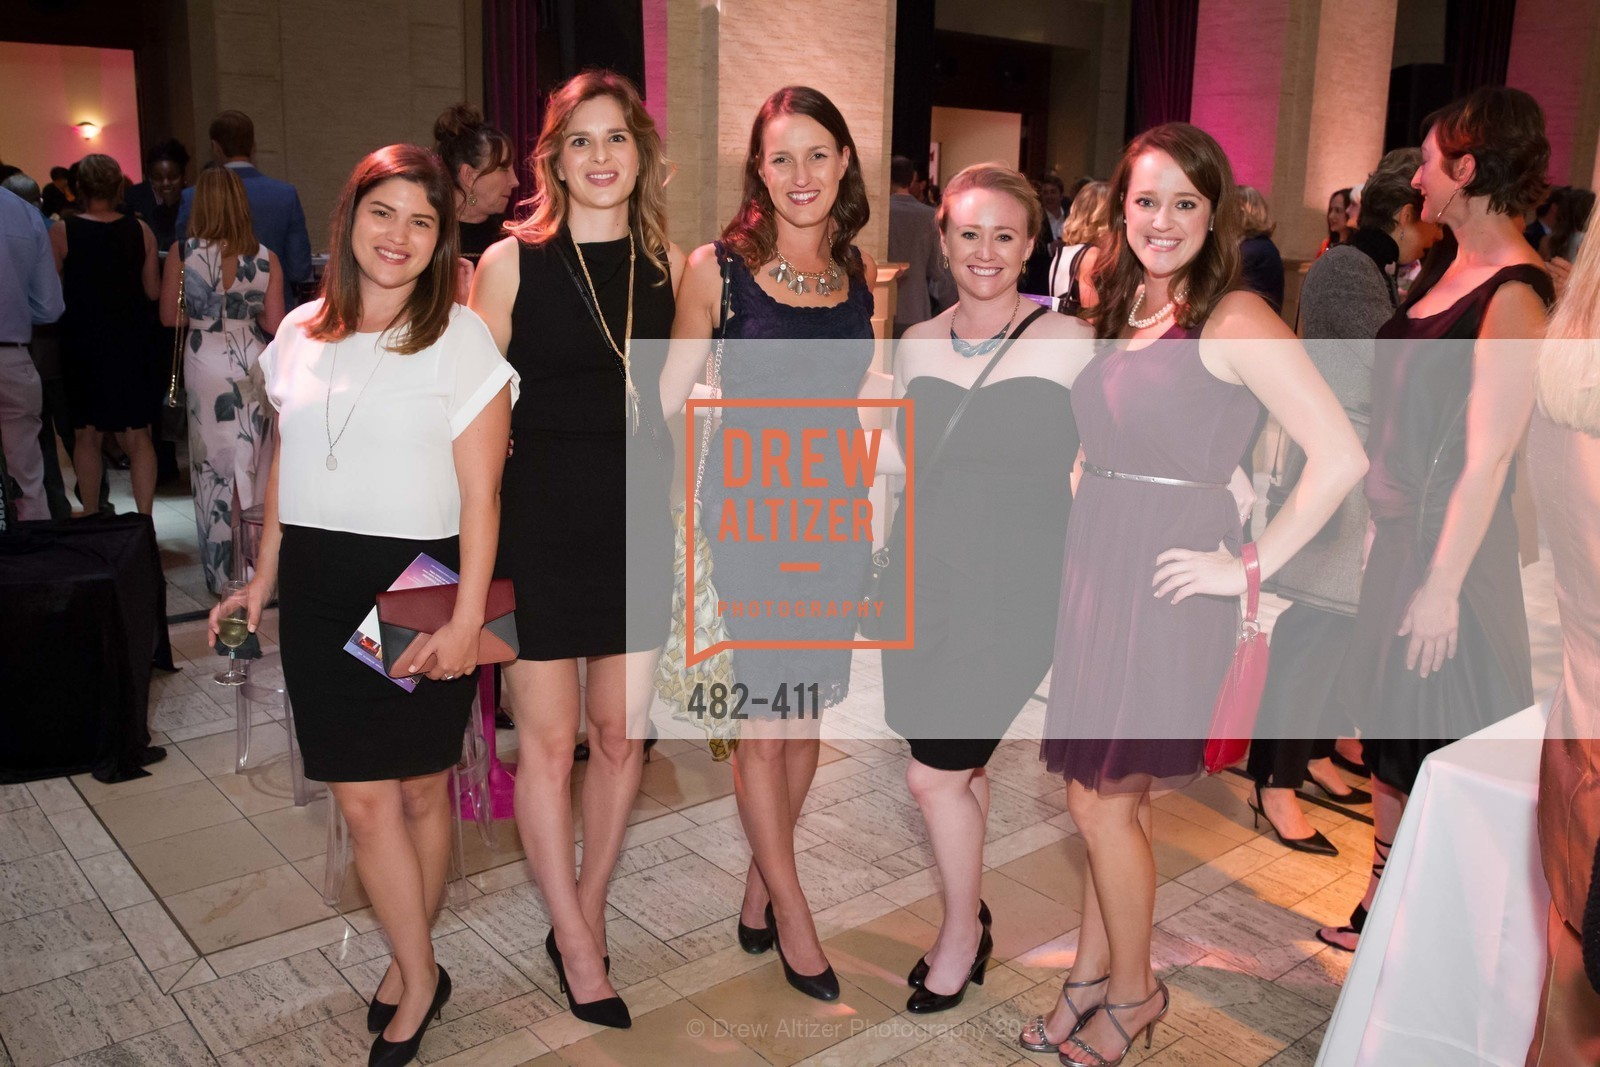 Kim Dorkman, Alana Paskett, Julie Jacobson, Alison McDonald, LaTache Tindale, Breast Cancer Emergency Fund's: THIS OLD BAG: The Power of the Purse, The Bently Reserve. 301 Battery St, October 23rd, 2015,Drew Altizer, Drew Altizer Photography, full-service event agency, private events, San Francisco photographer, photographer California